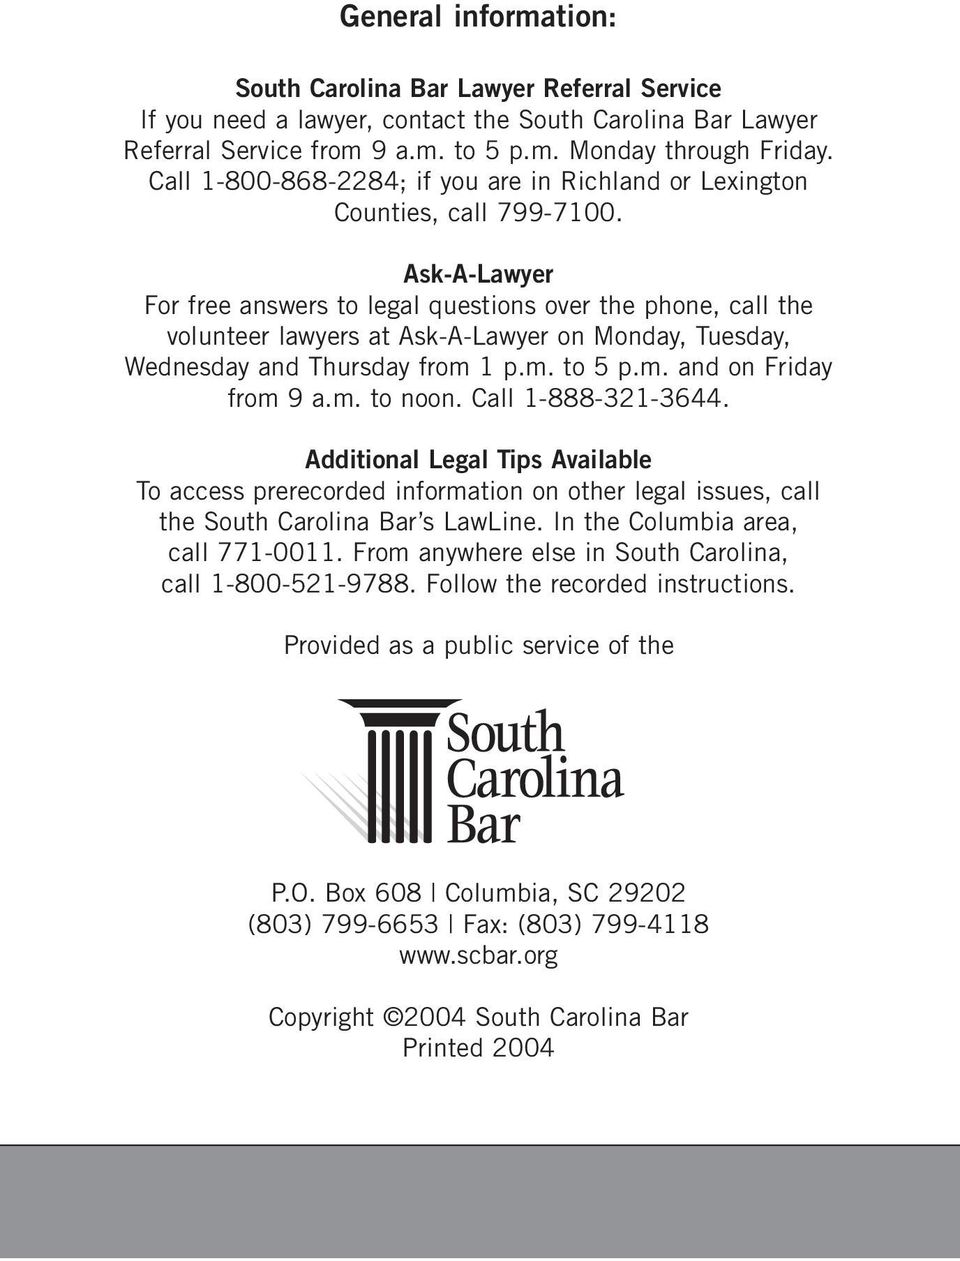 Ask-A-Lawyer For free answers to legal questions over the phone, call the volunteer lawyers at Ask-A-Lawyer on Monday, Tuesday, Wednesday and Thursday from 1 p.m. to 5 p.m. and on Friday from 9 a.m. to noon.